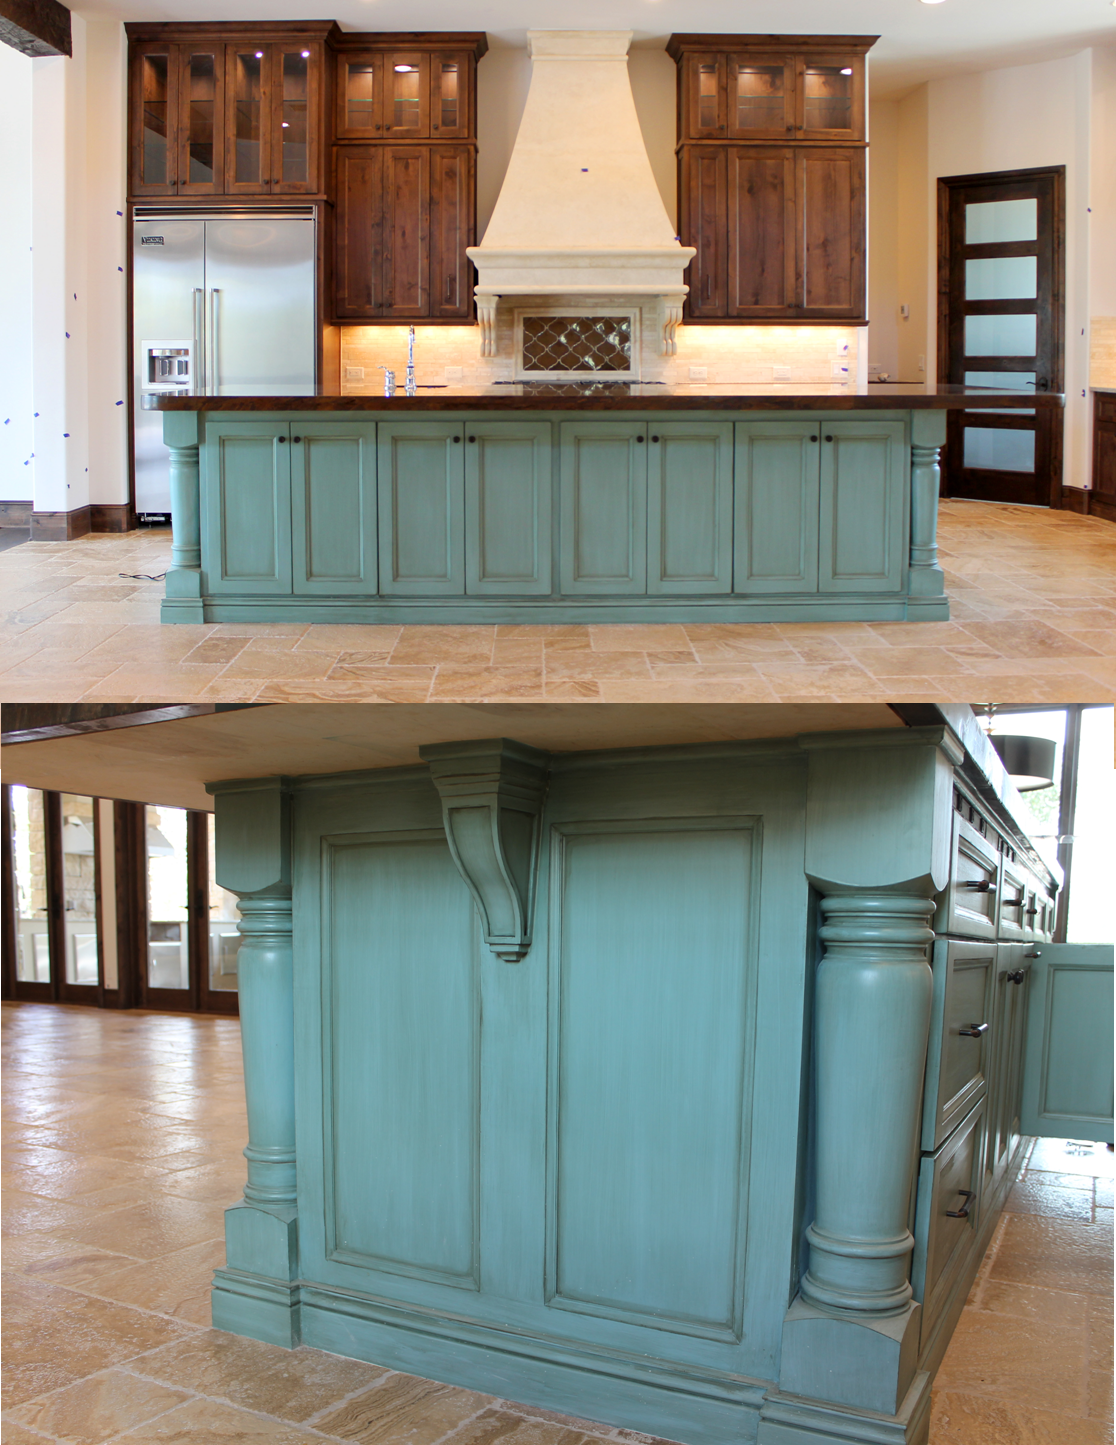 How to: Paint cabinets (secrets from a professional). All the tips ...